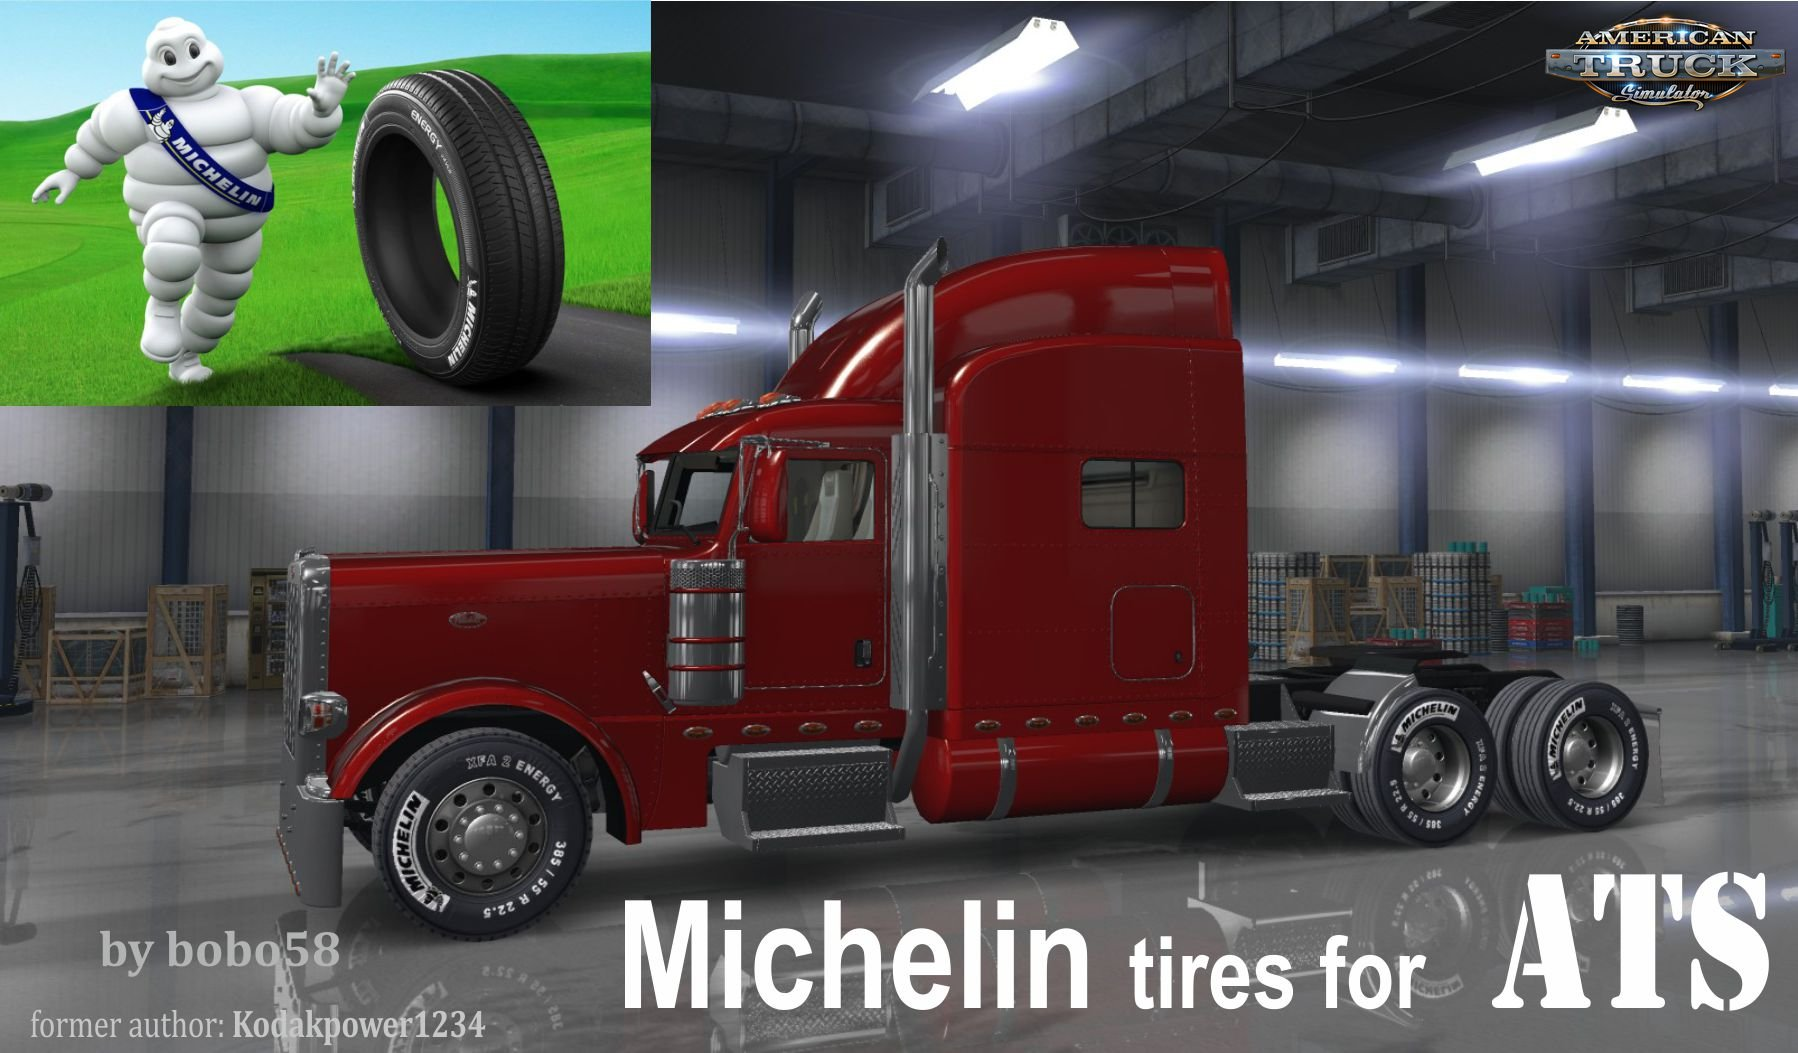 Michelin tires for ATS